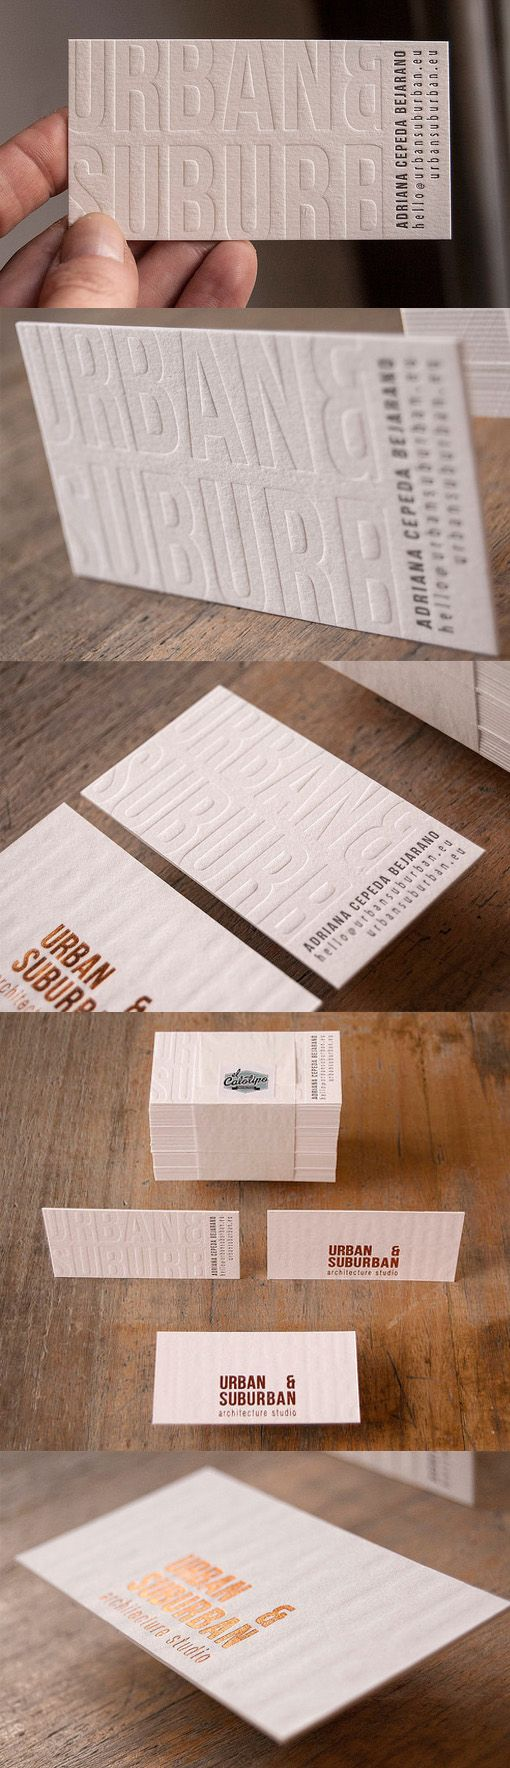 212 best business cards images on pinterest business cards deeply embossed white textured letterpress copper foiled business card for an architect reheart Choice Image